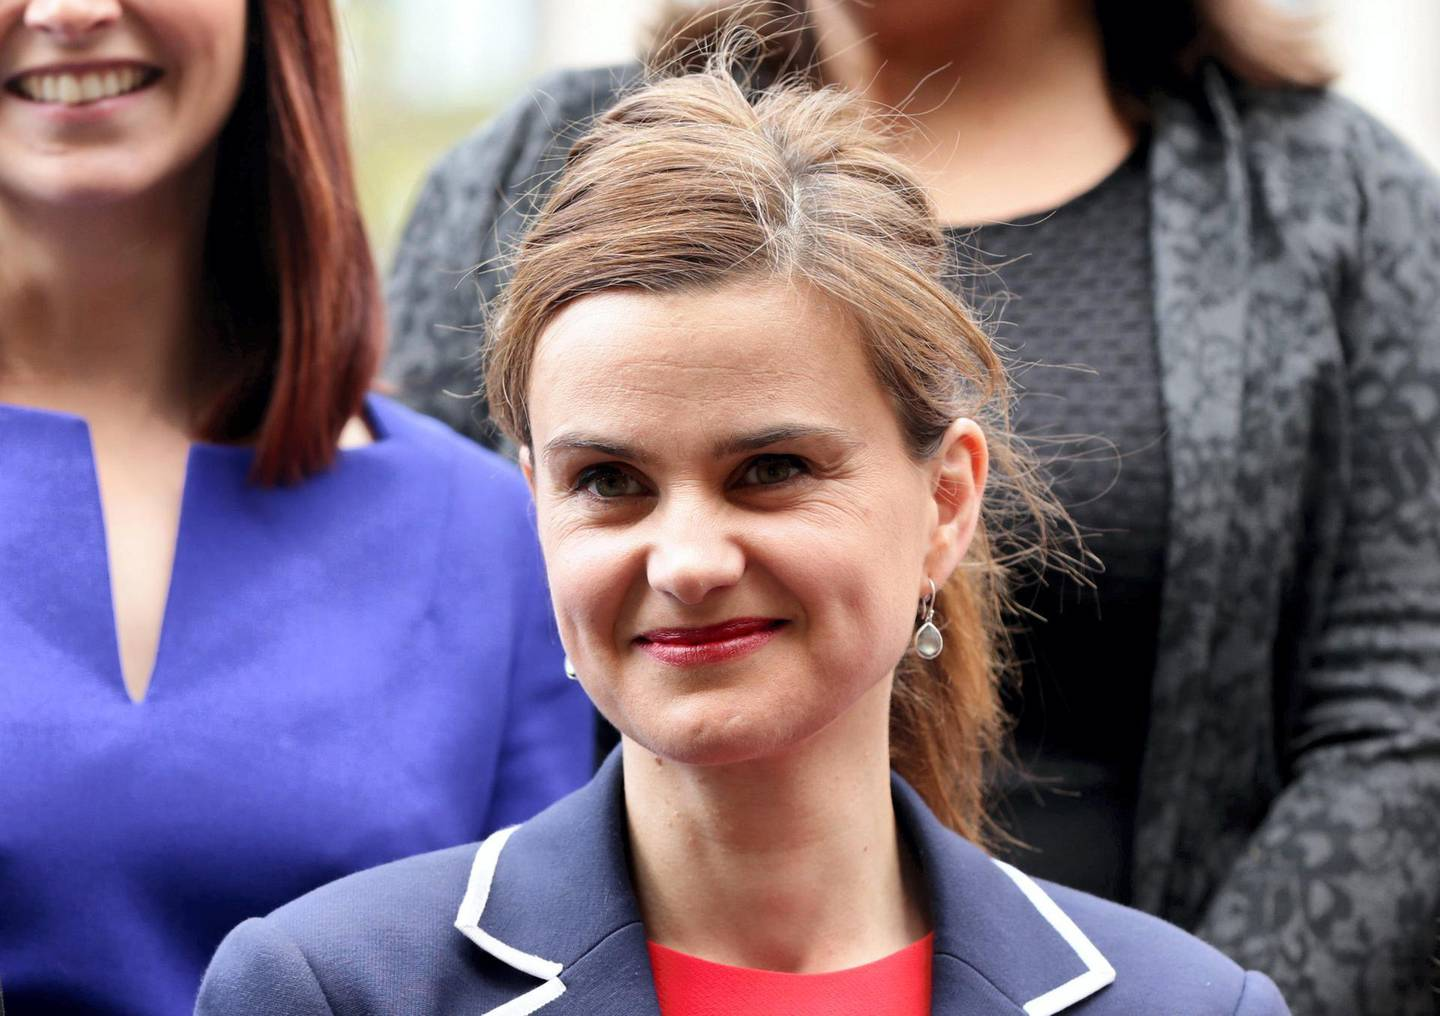 G3YFE9 Previously unreleased photo dated 12/05/15 of Labour MP Jo Cox, who has been shot in Birstall near Leeds, an eyewitness said.